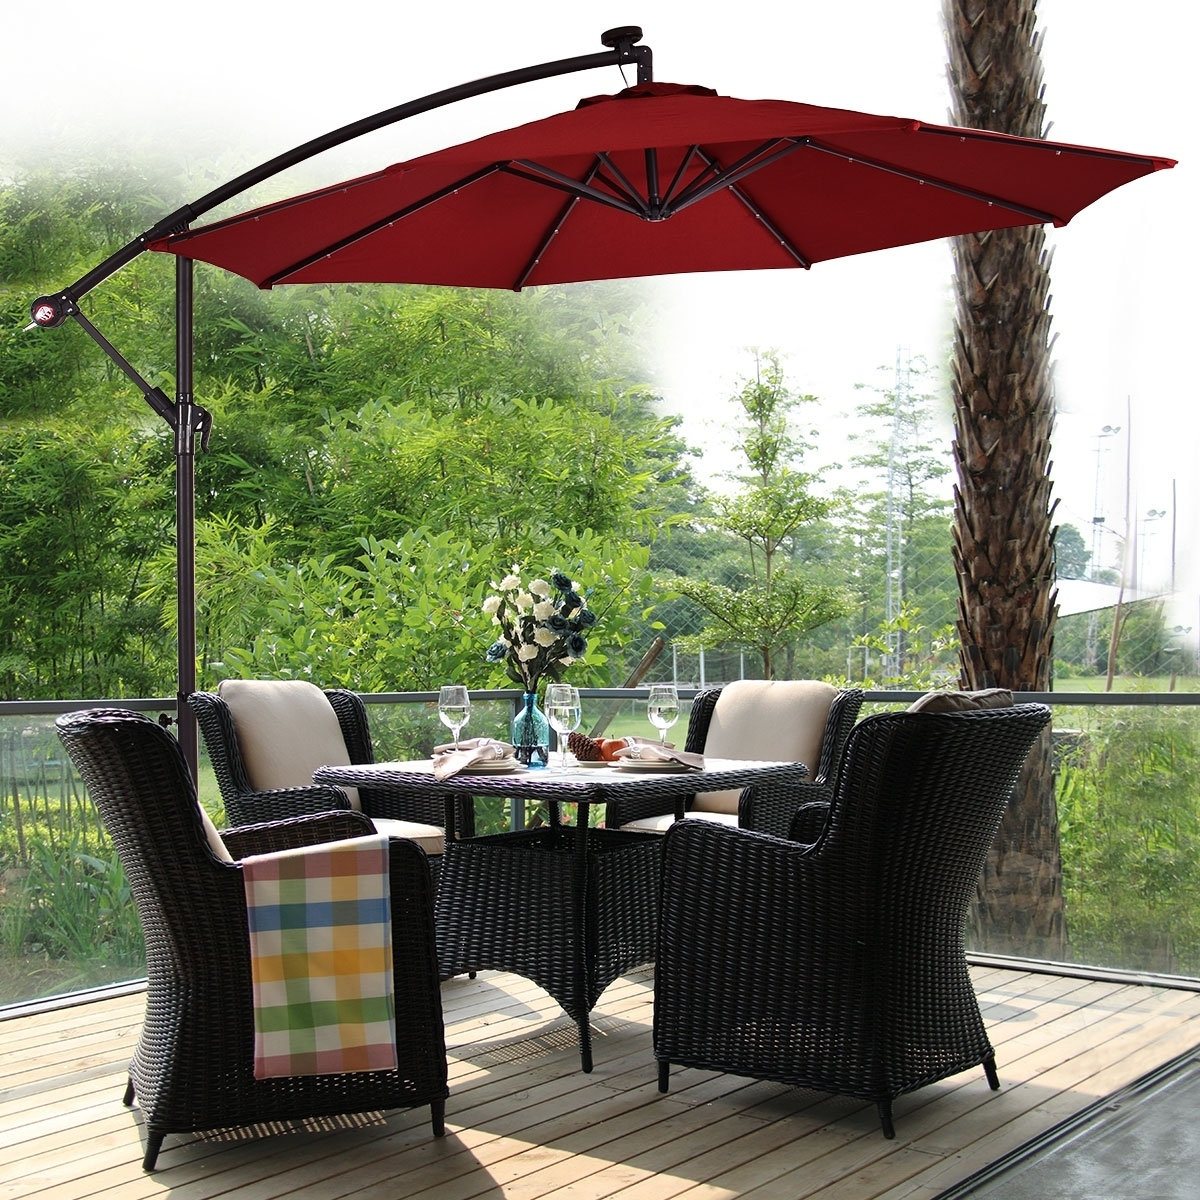 Buy Patio Umbrellas Online At Overstock (View 2 of 20)